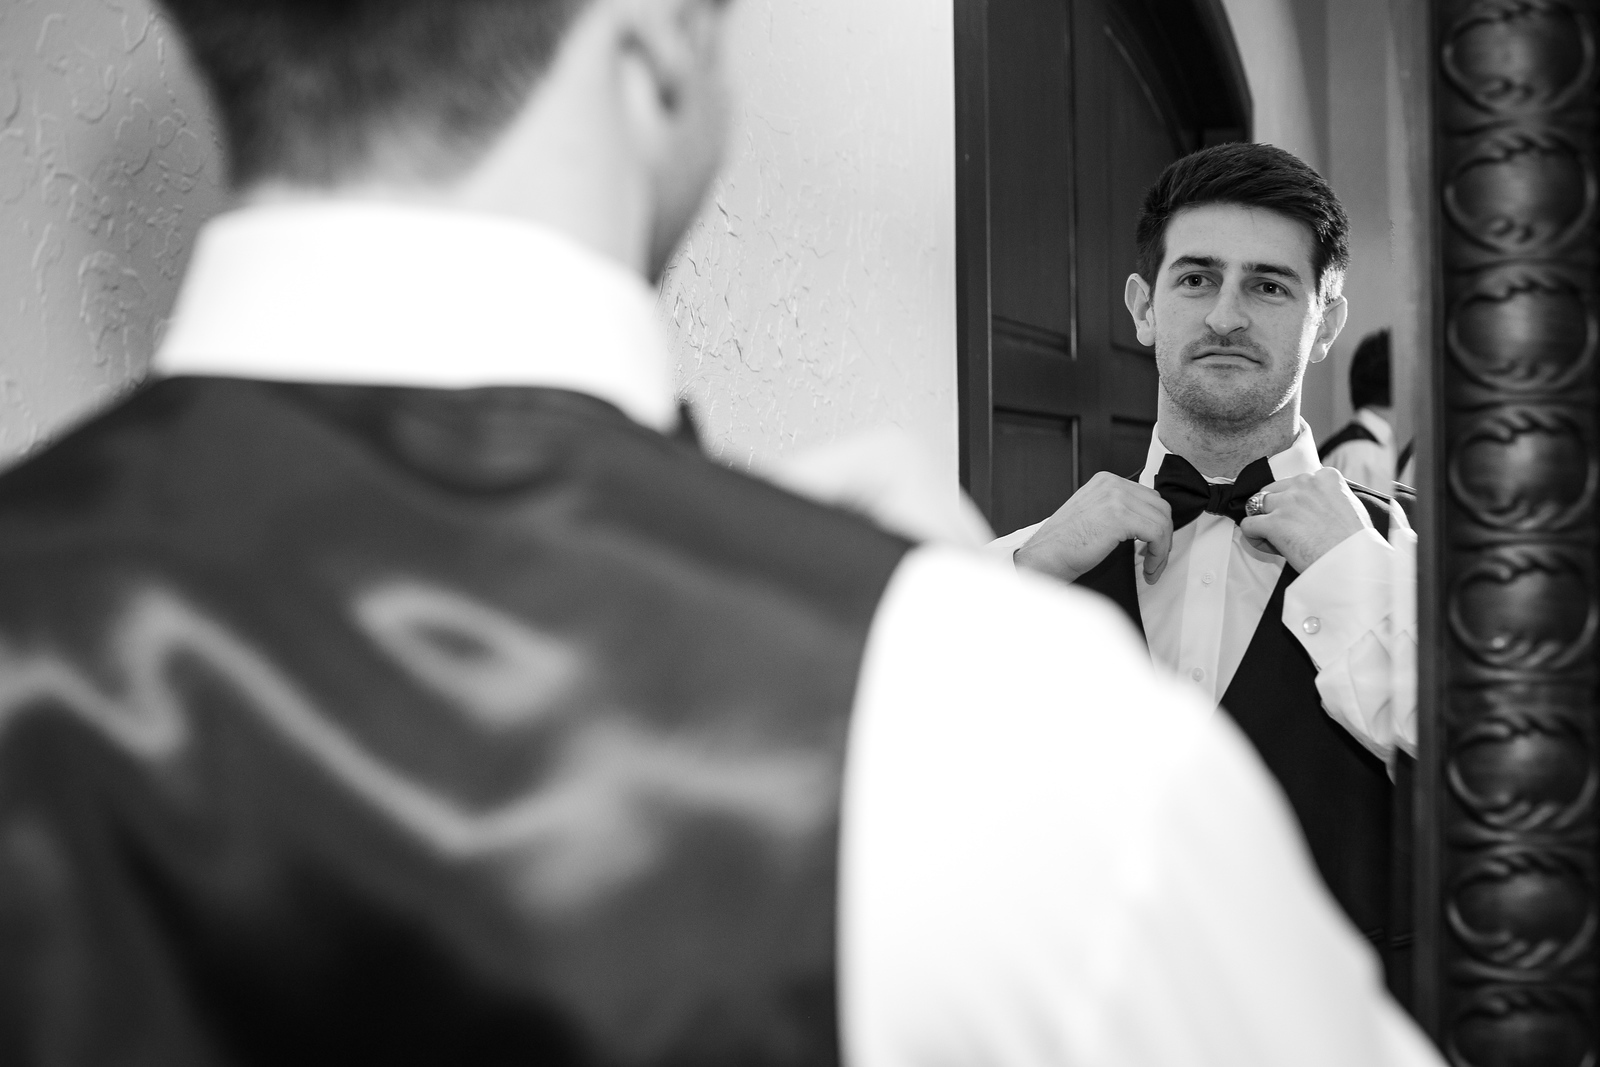 a groom tying his bowtie in the mirror before his wedding ceremony